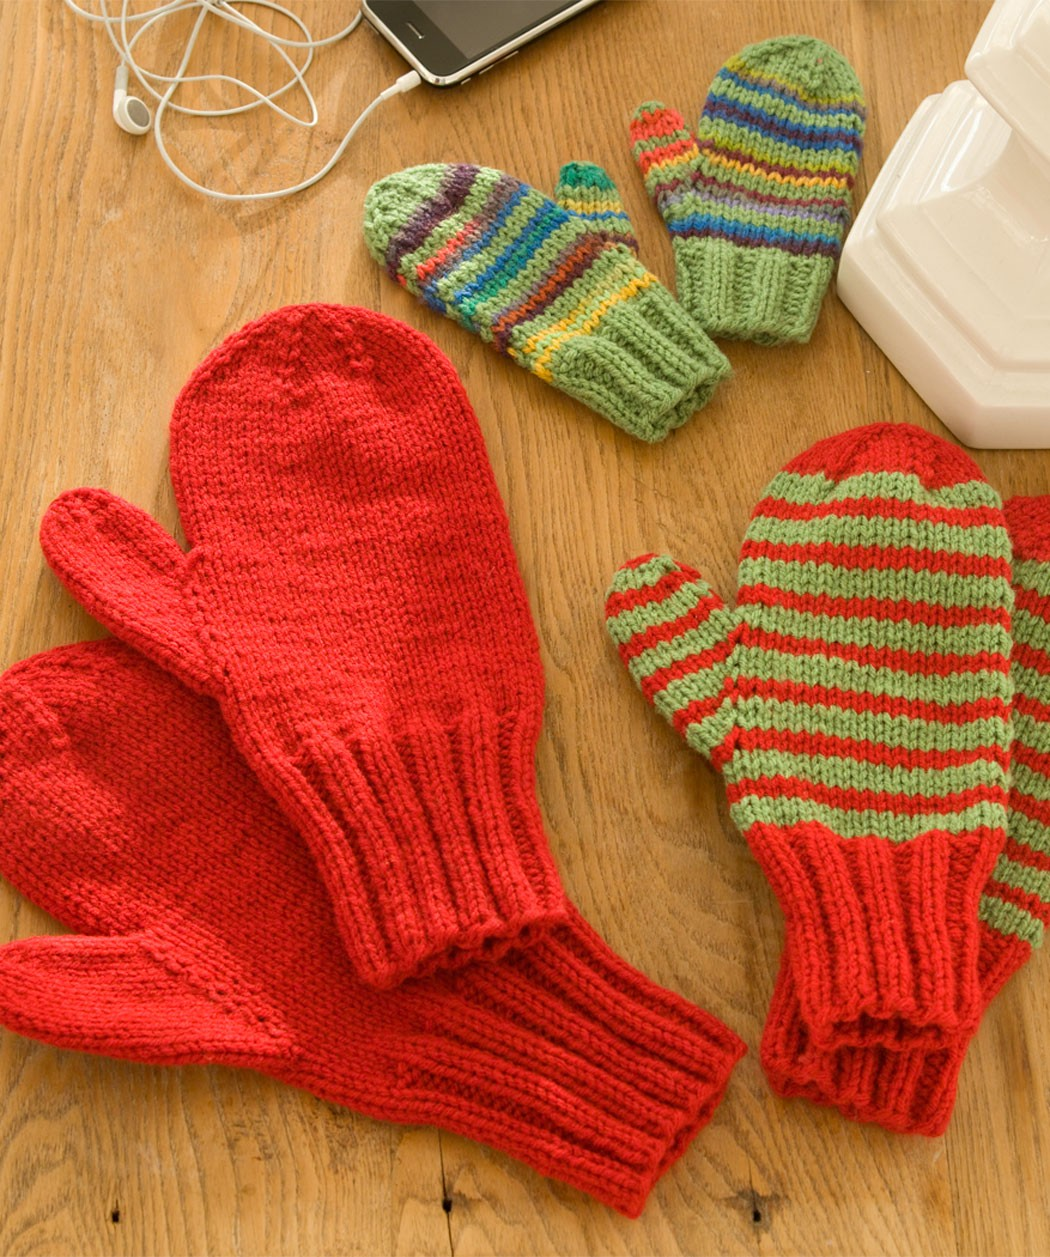 Mittens Knitting Pattern Free : Free Mitten Pattern To Knit myideasbedroom.com